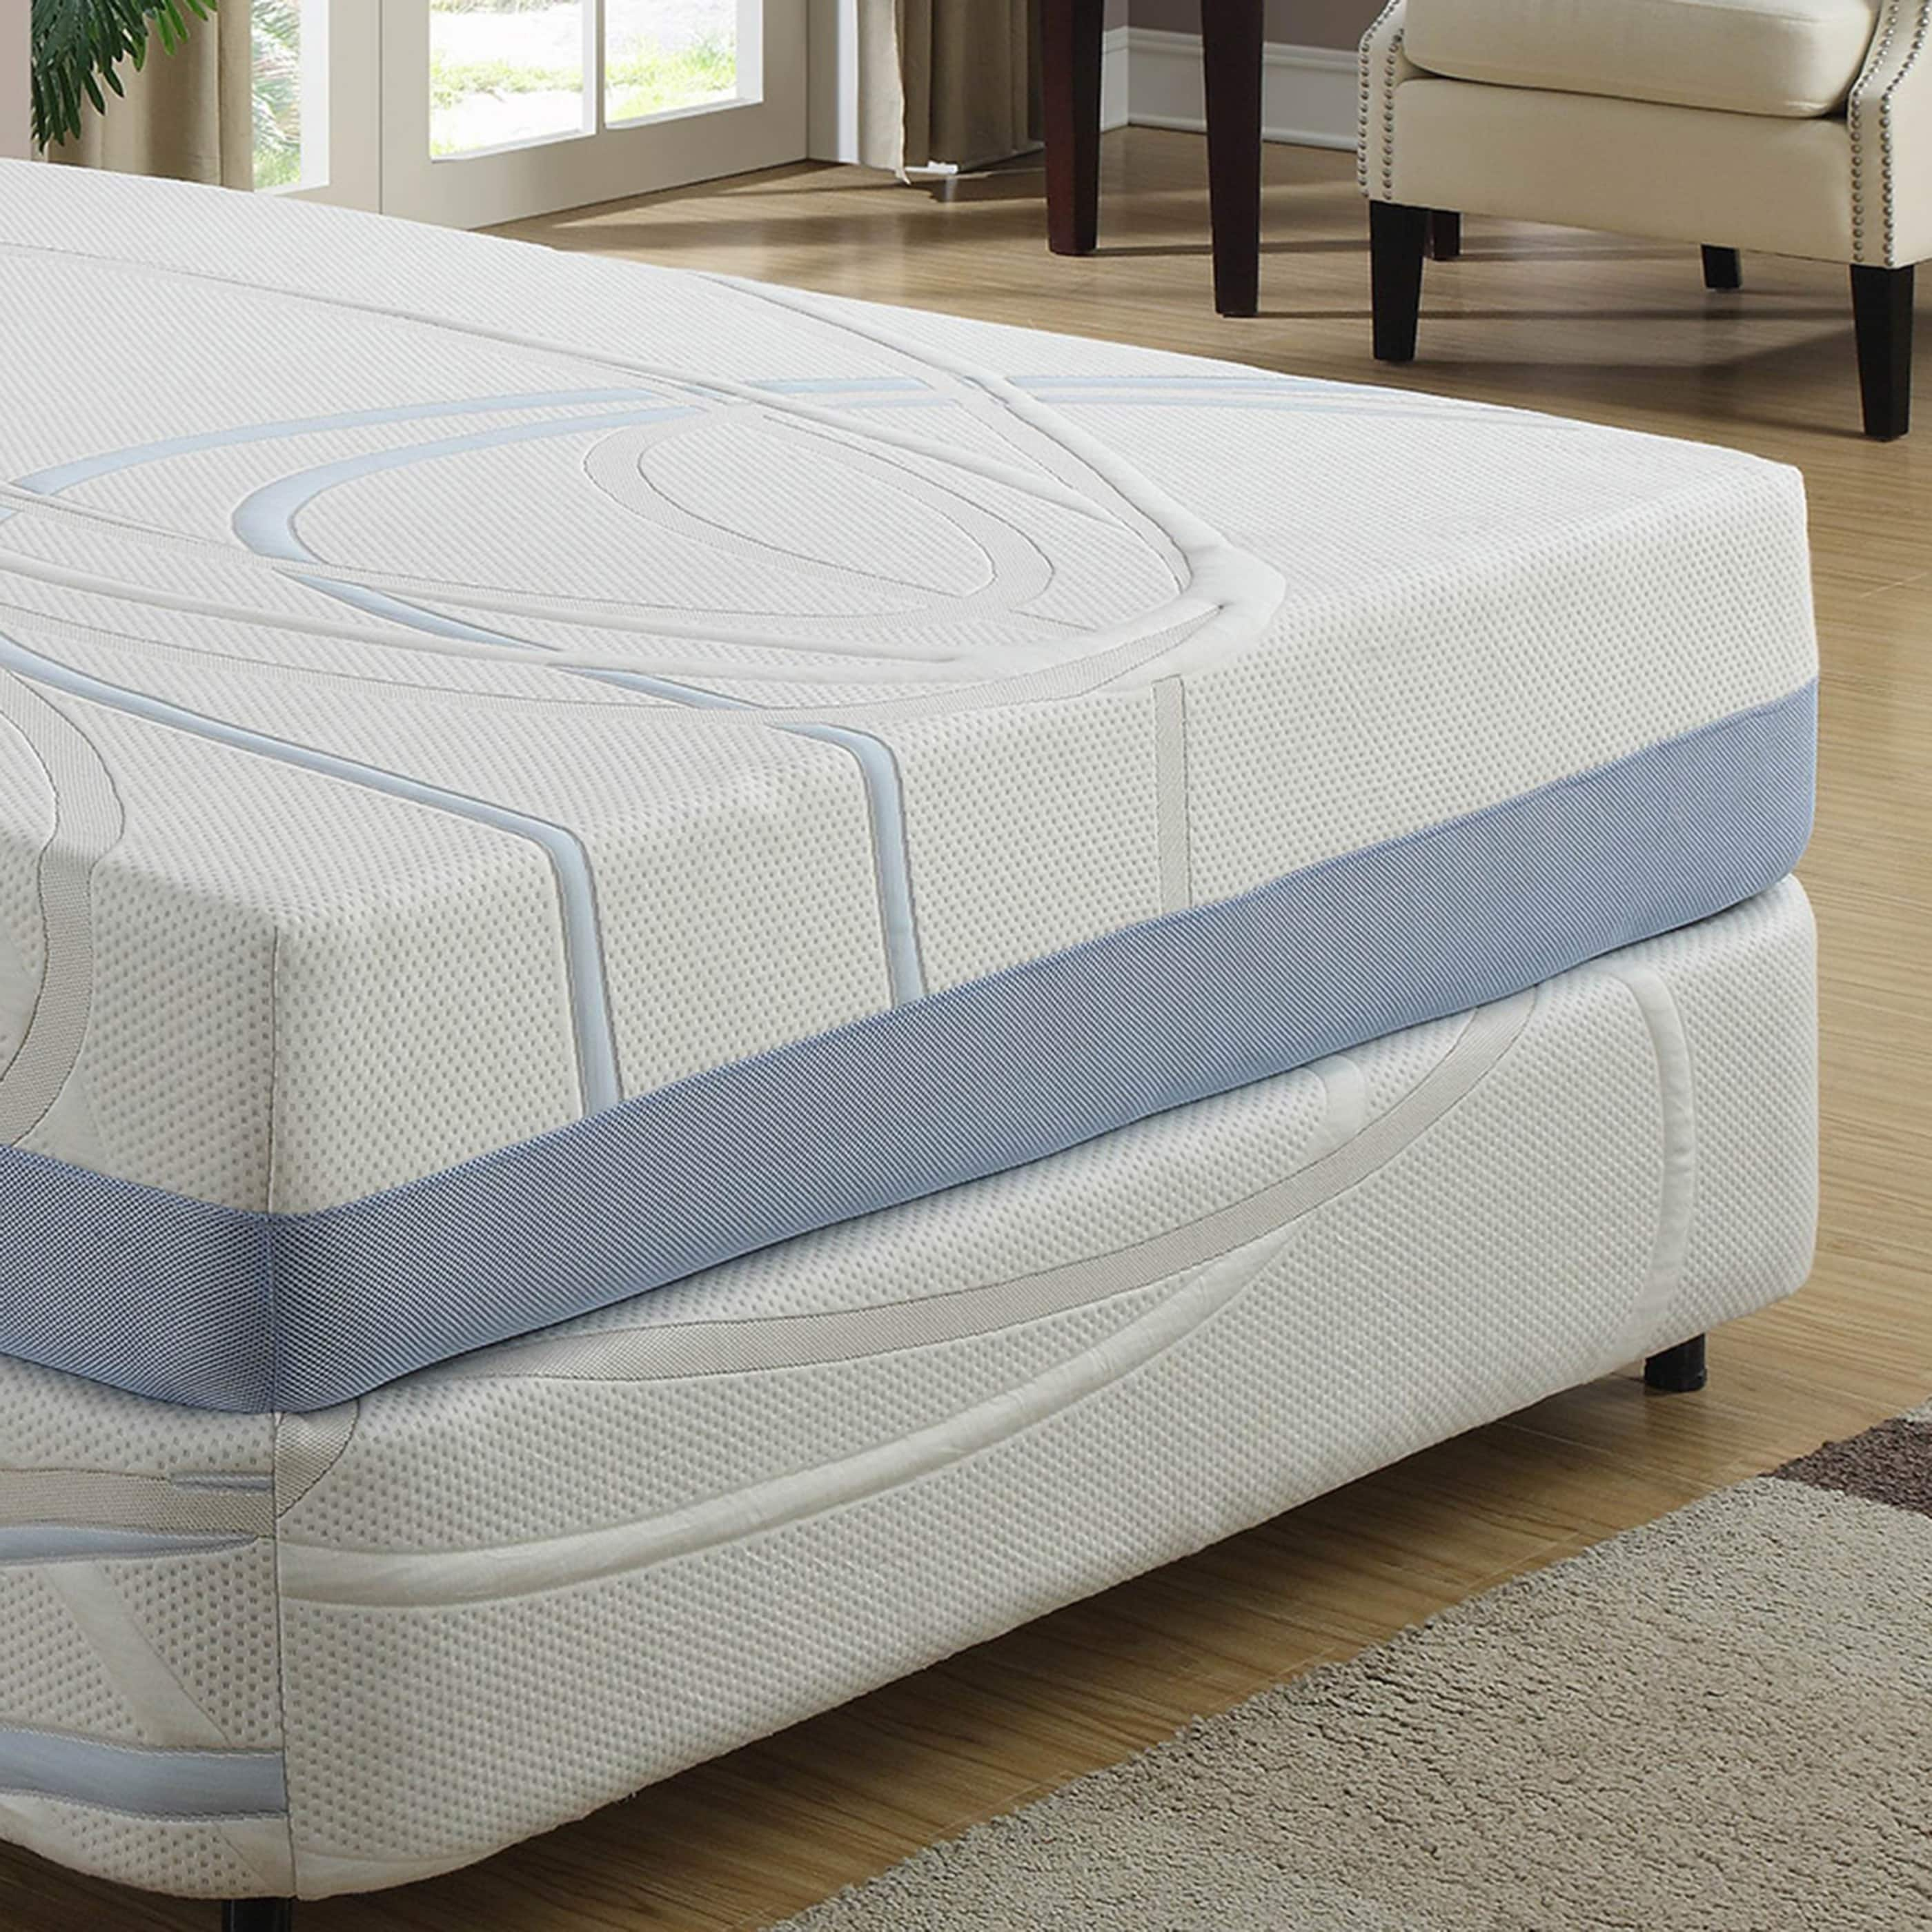 shop 12 inch california king gel infused memory foam mattress on sale free shipping today overstockcom 9426545 - California King Memory Foam Mattress